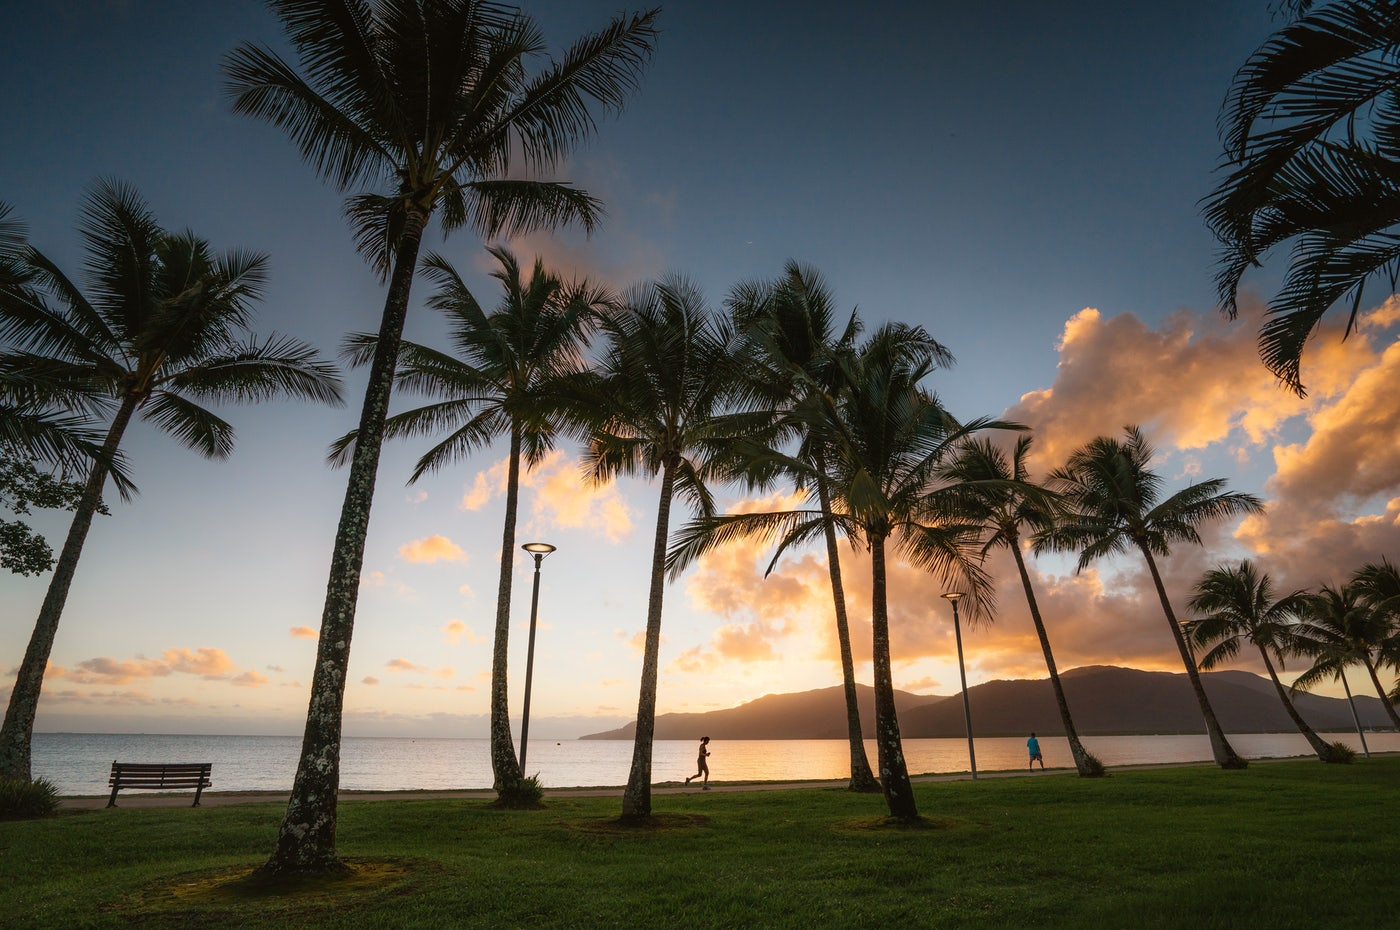 View of the Sunset on Cairns beaches